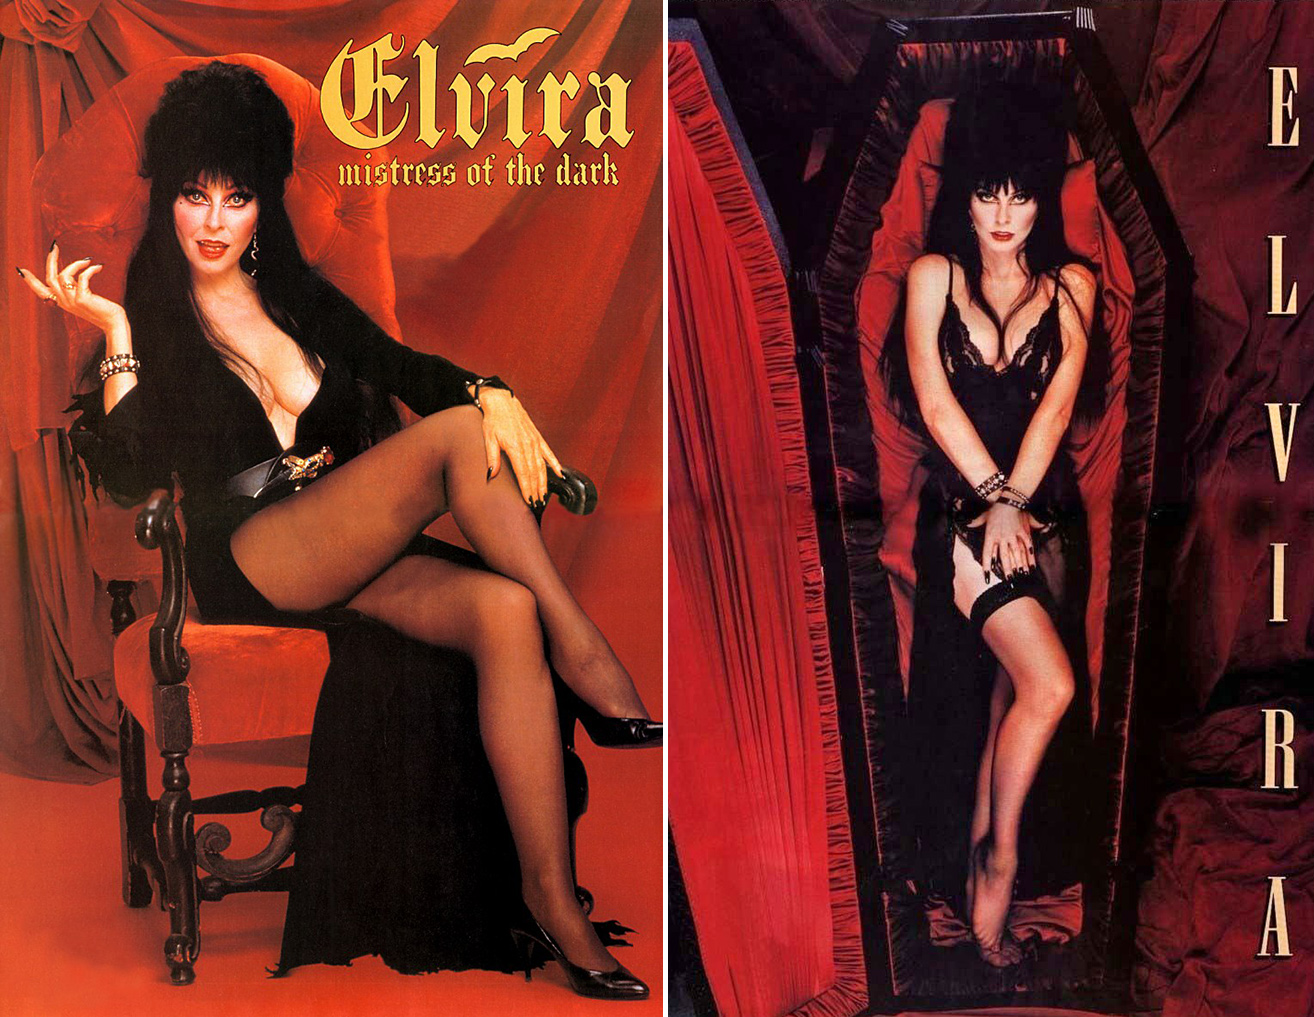 Elvira mistress of the dark nude